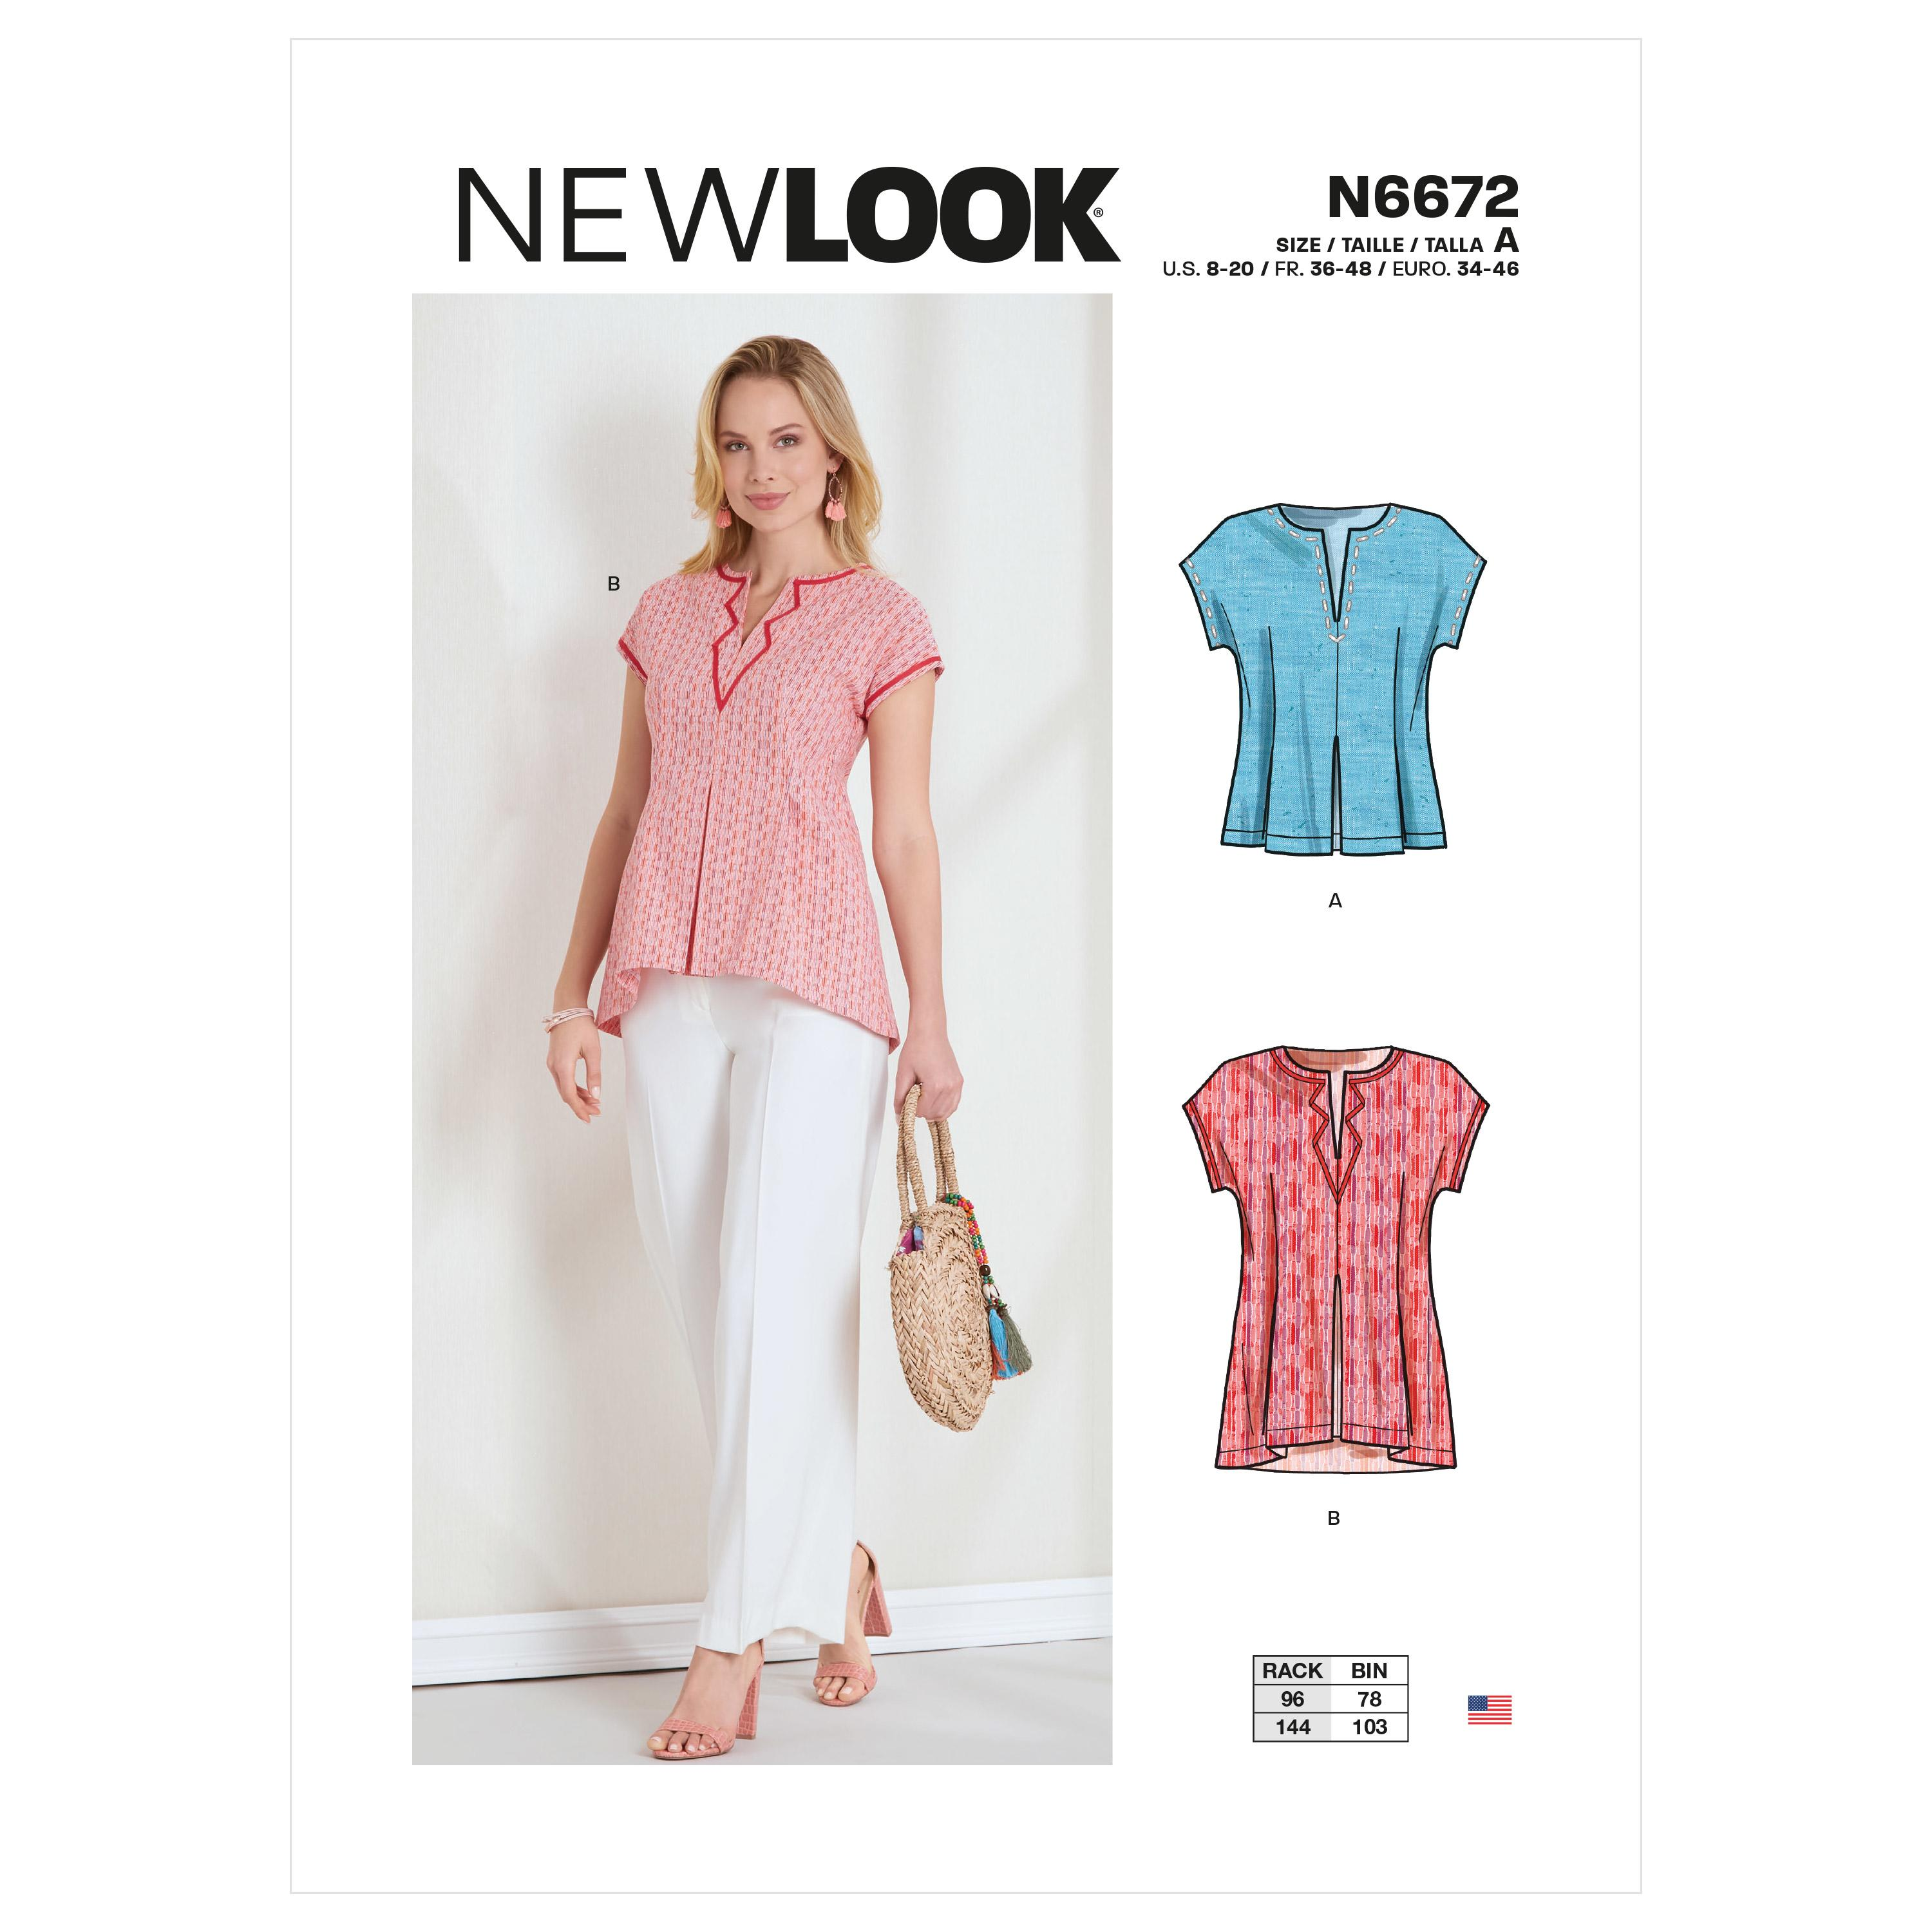 New Look Sewing Pattern N6672 Misses' Top or Tunic